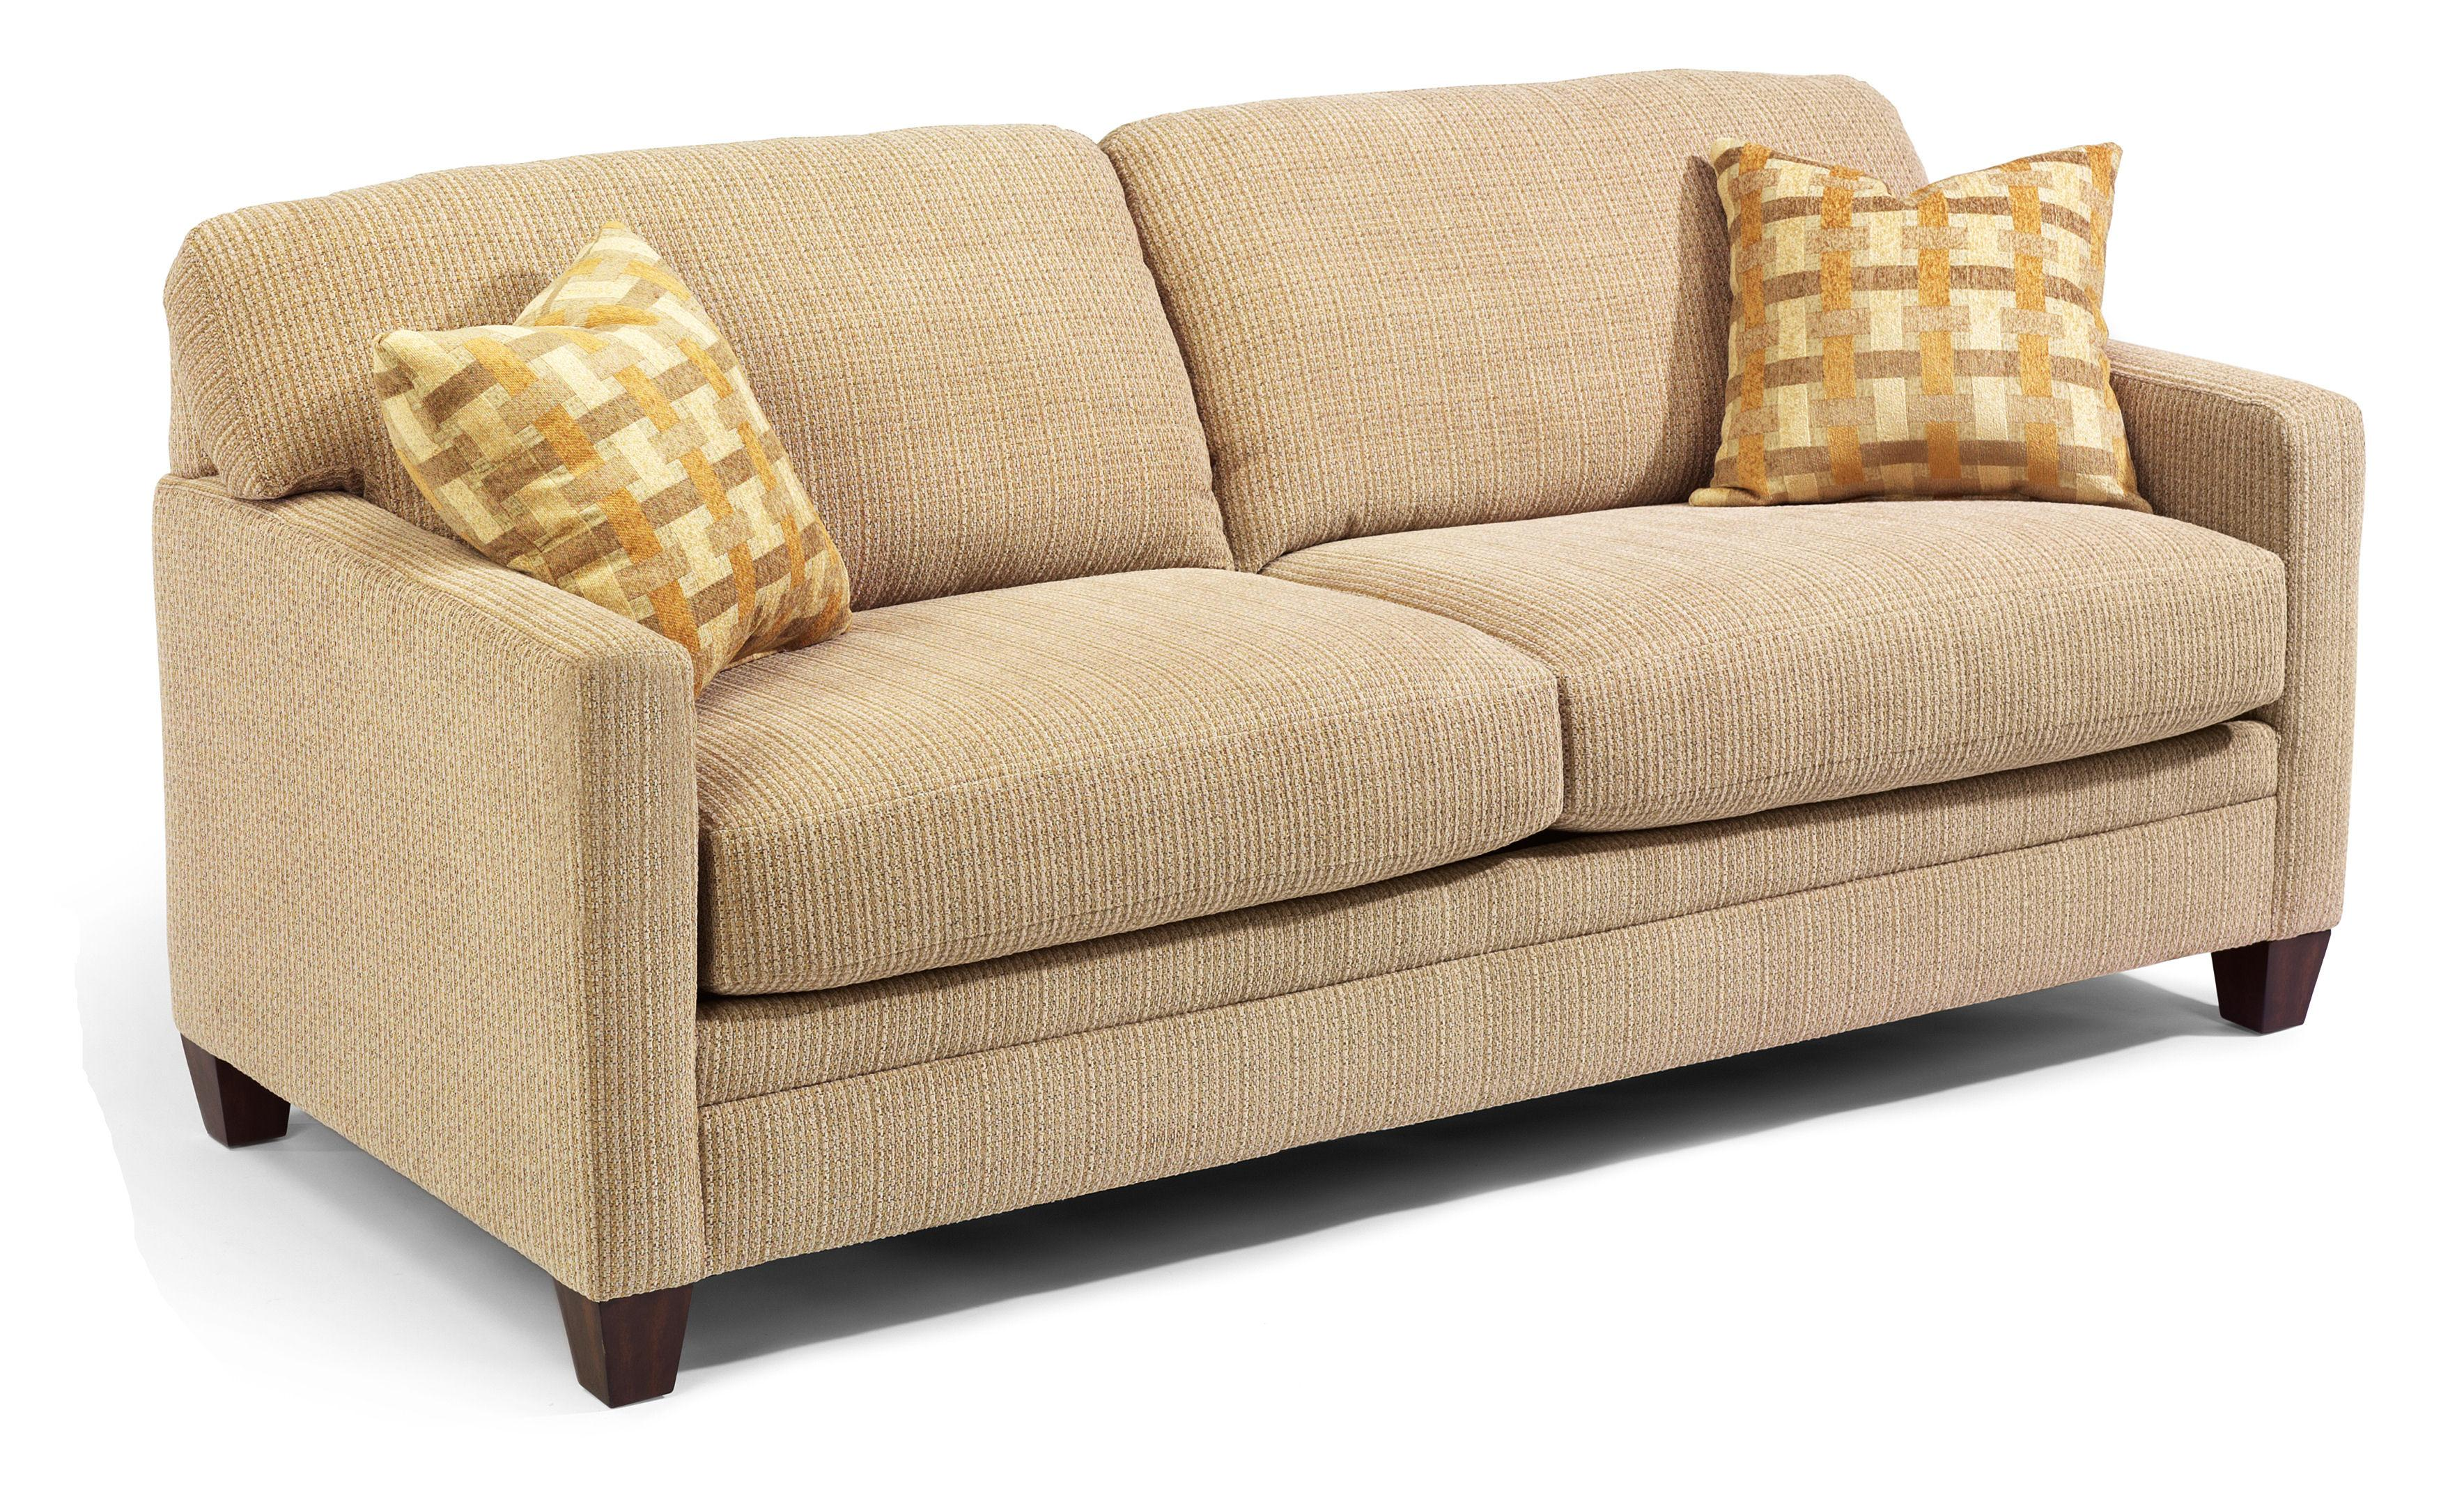 Upholstered Sofa Sleeper